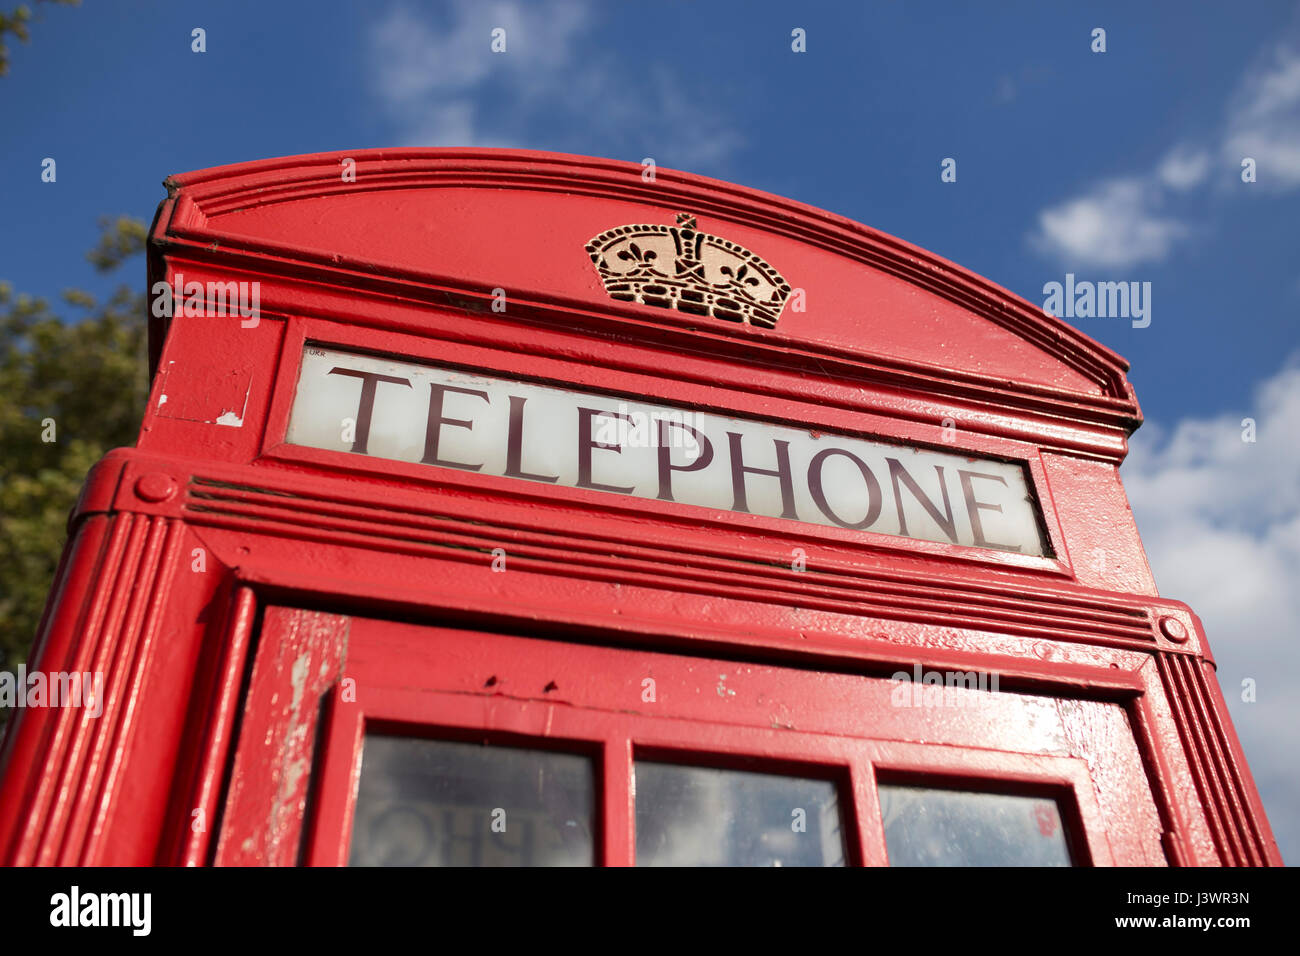 Top of traditional red telephone box in front of blue sky and trees. - Stock Image